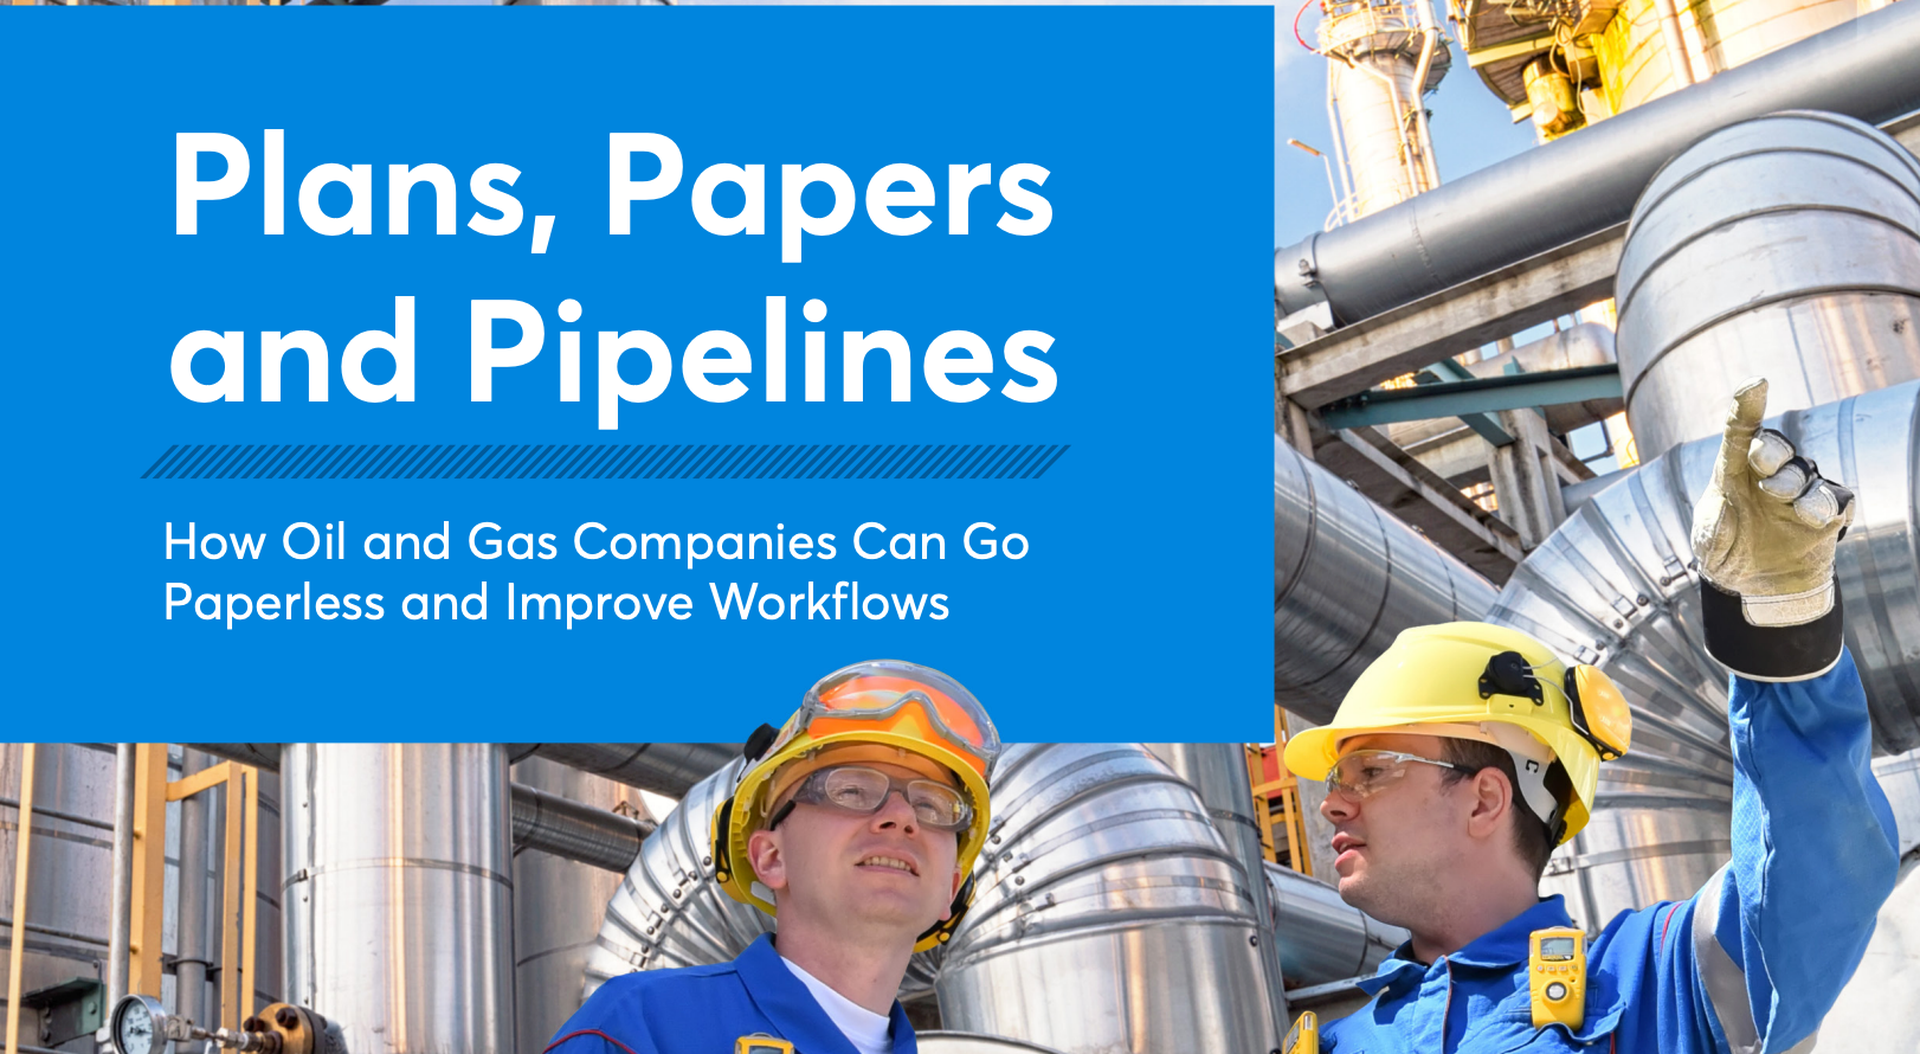 plans-papers-and-pipelines